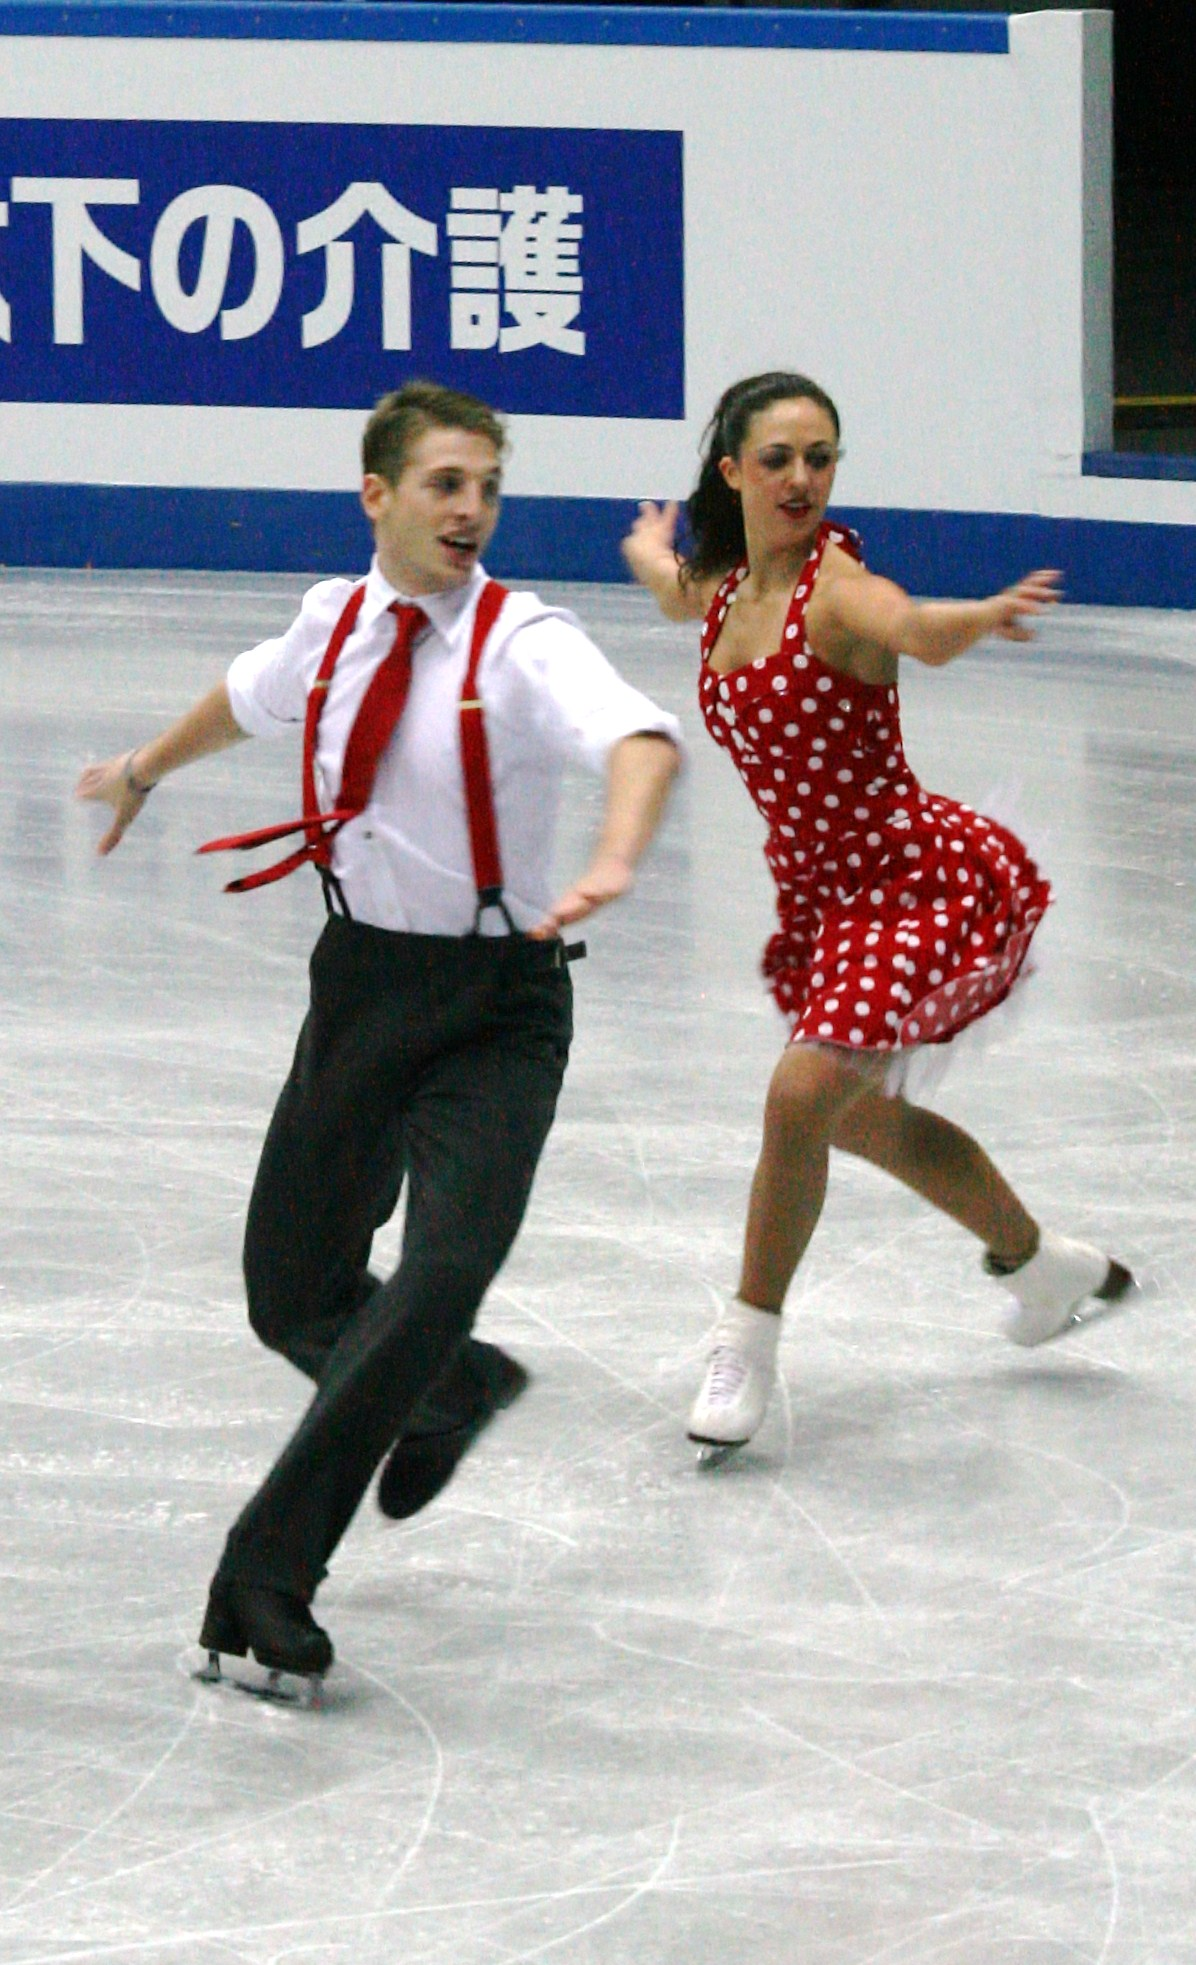 Figure skater Angelica Krylova: biography, photos and achievements 87